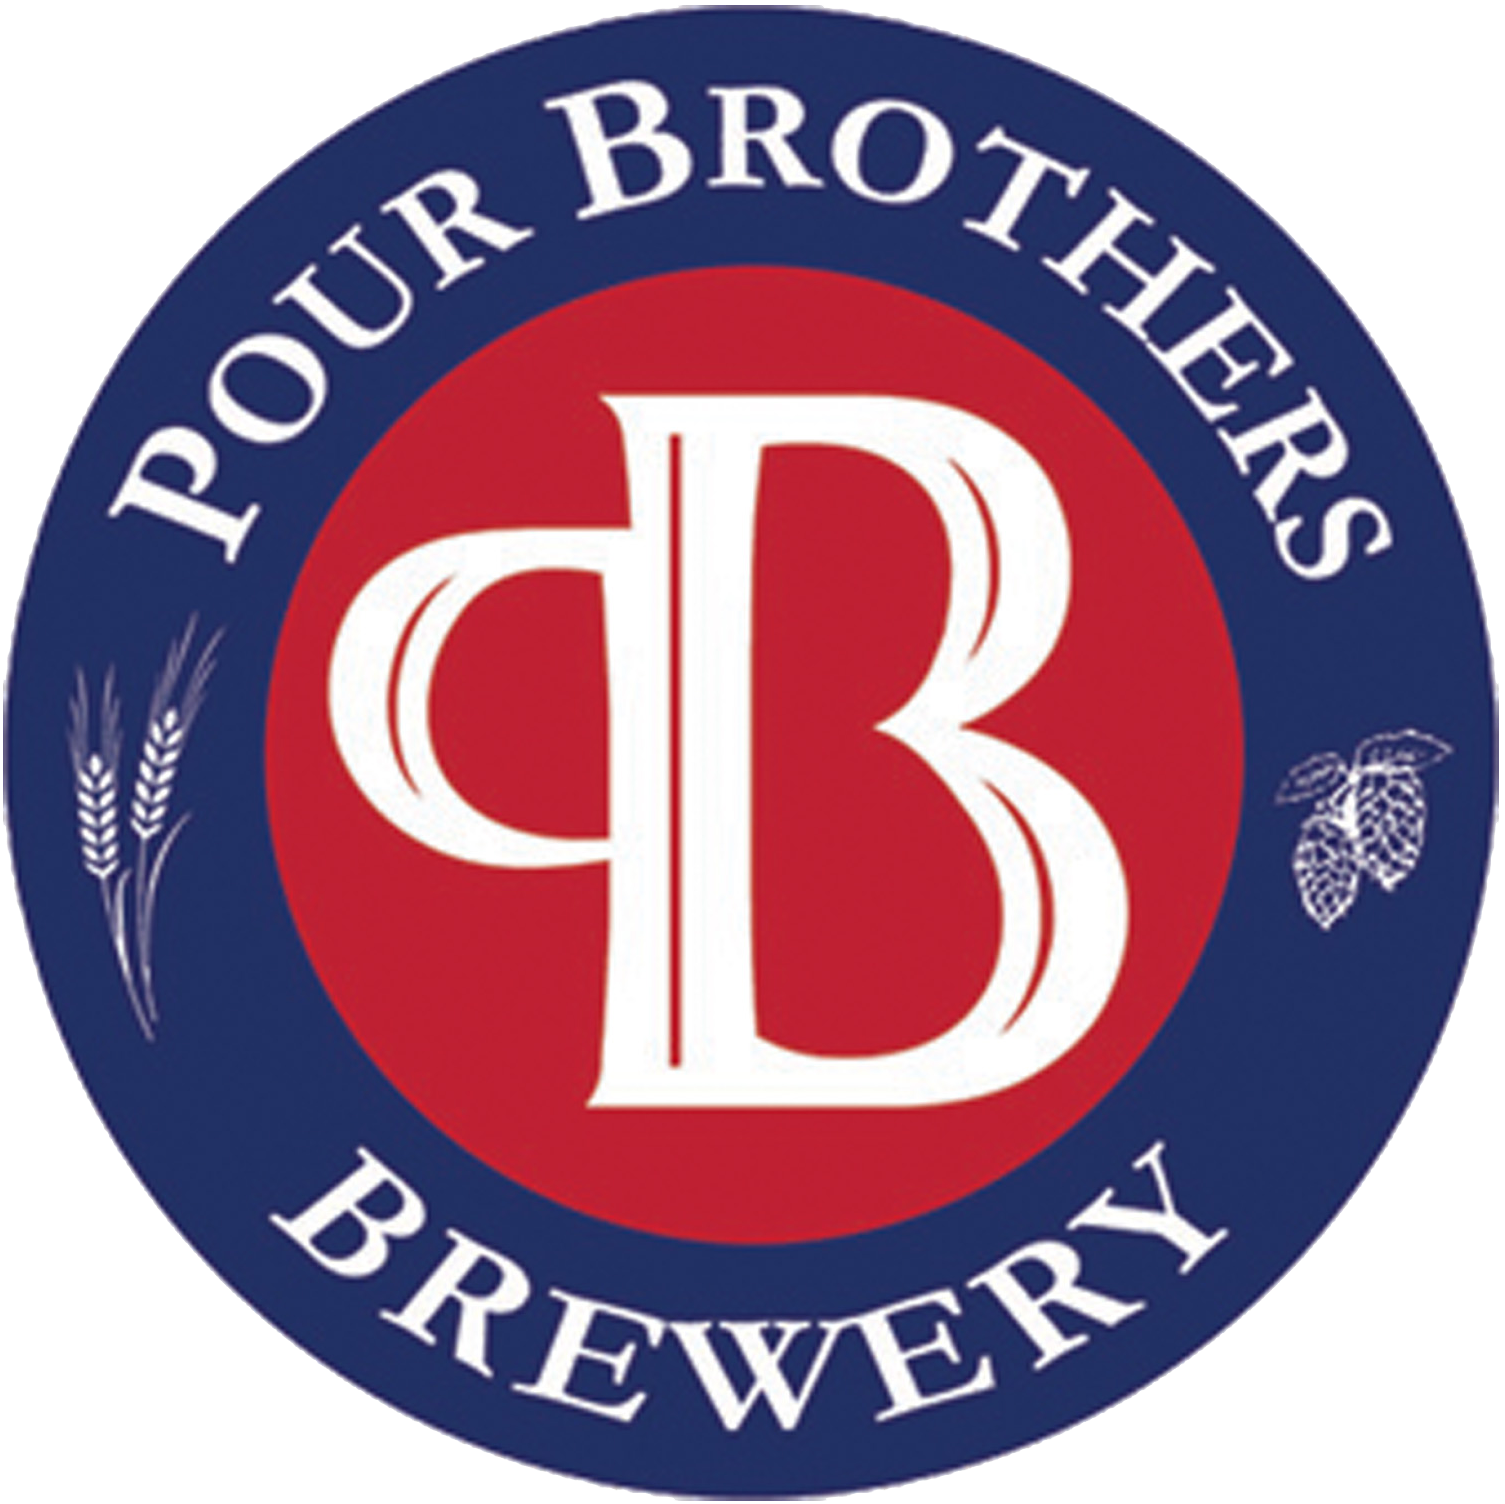 Pour Brothers Brewery